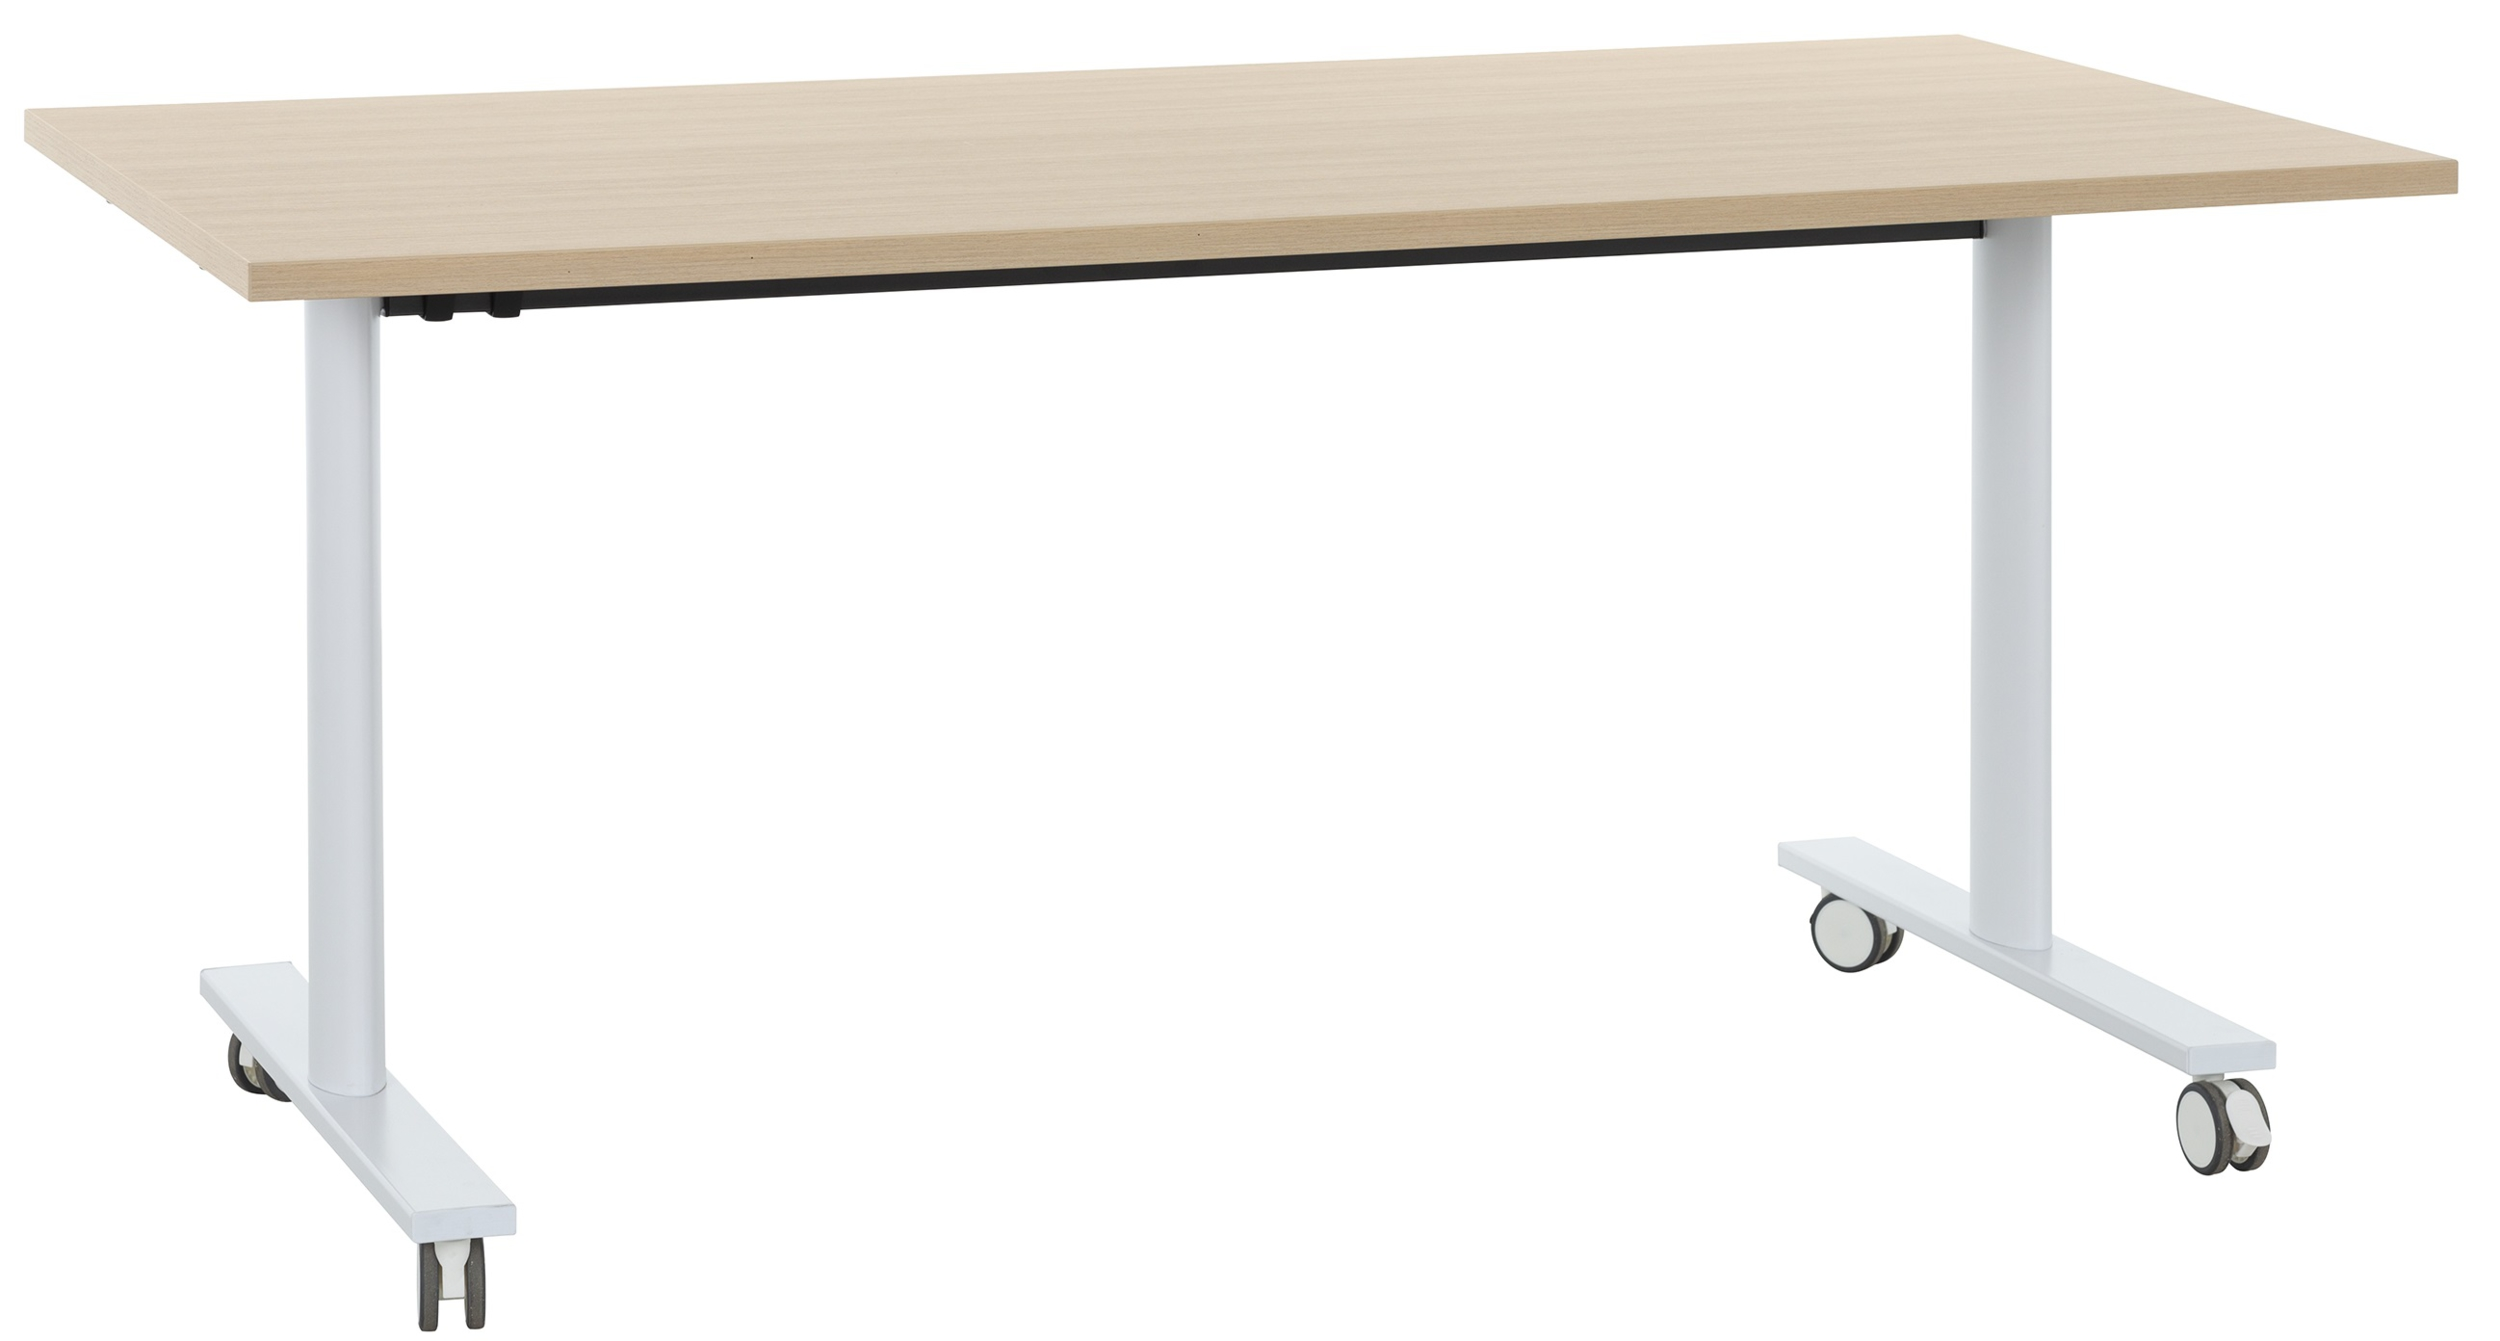 Yes Chene Naturel Pieds Blanc Table Mobile Et Rabattable 160cm